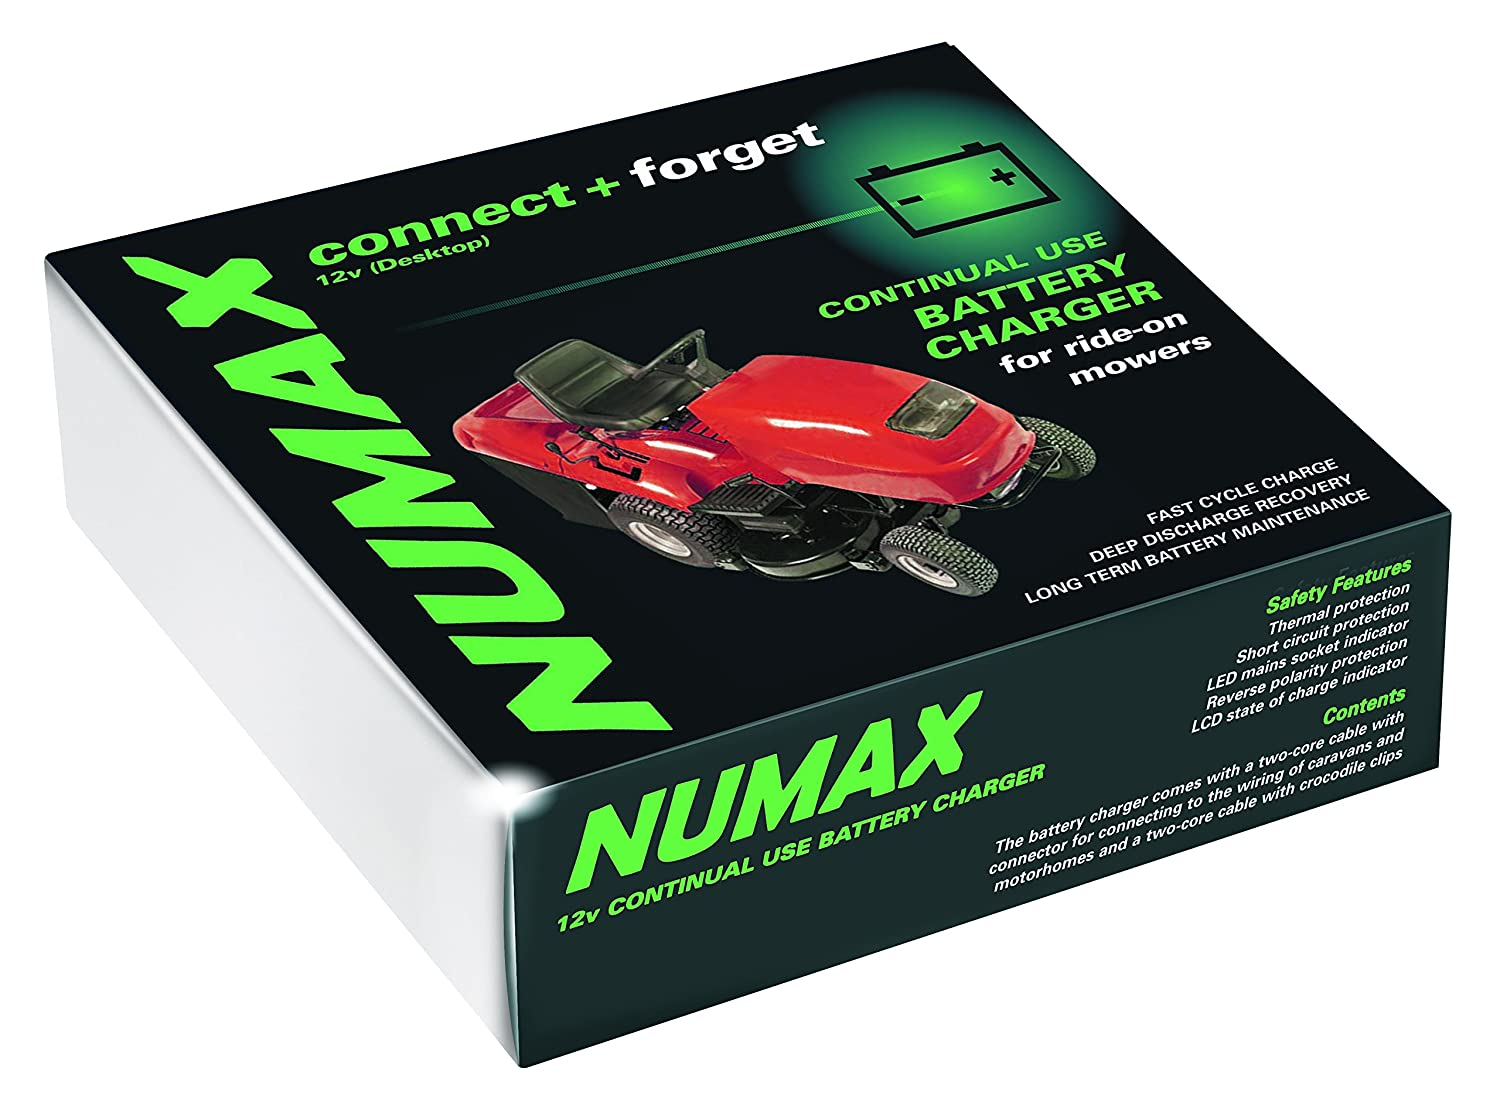 120400MOW - Numax 'Connect & Forget' 12V 4A Mower Battery Charger